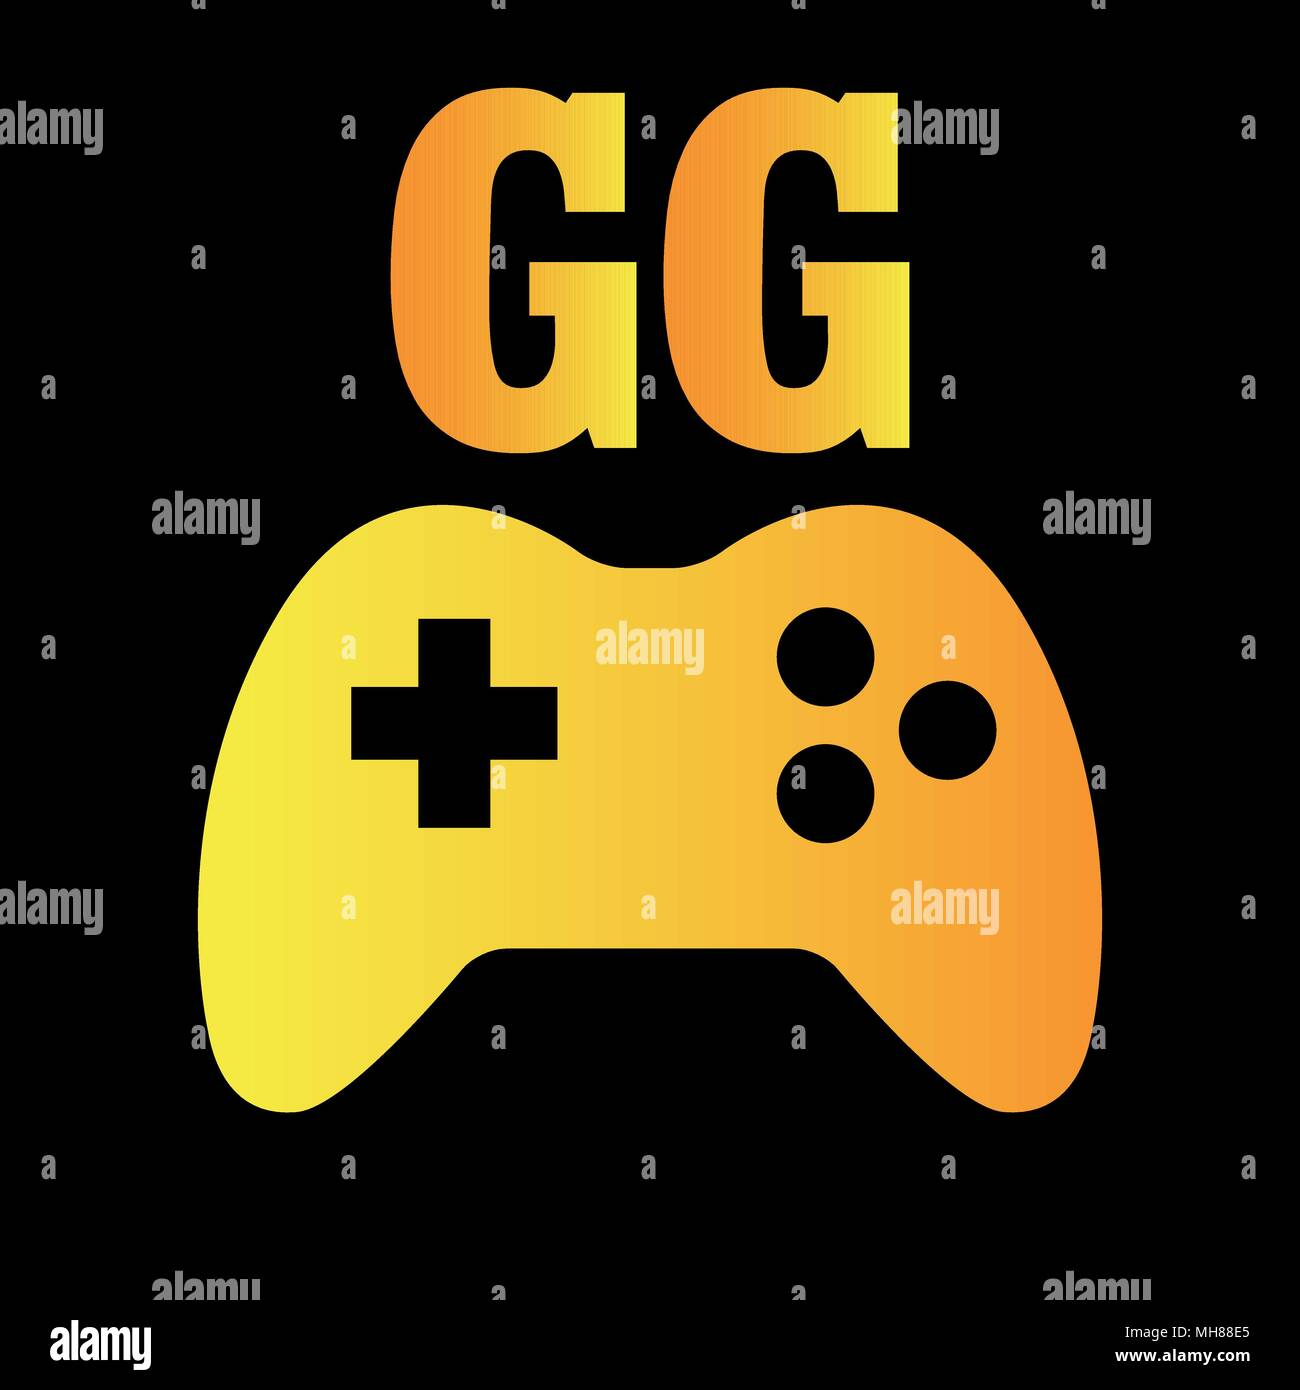 vector t shirt design for gamers with word gg it is the